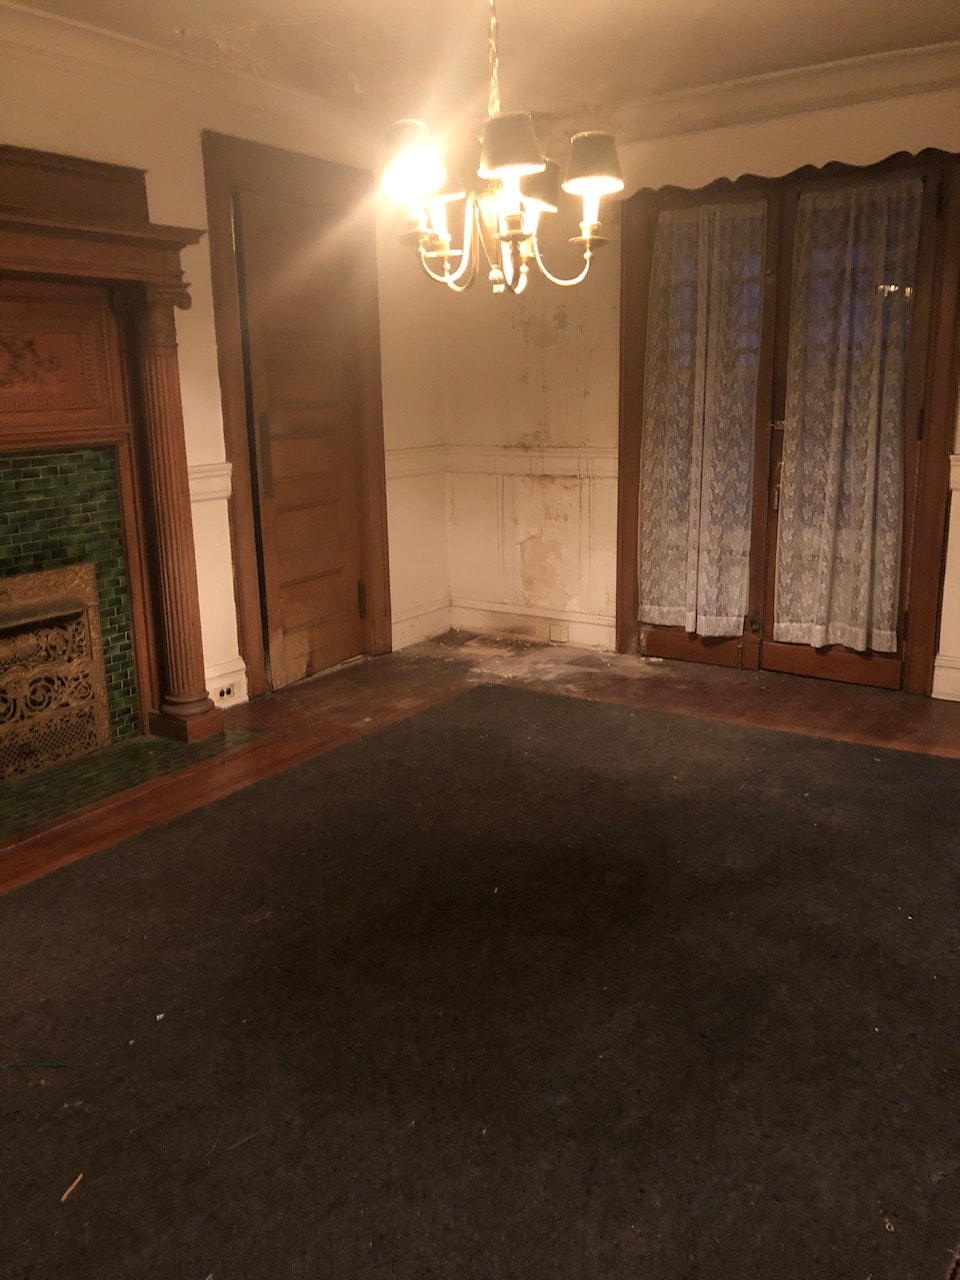 Dining room before with lots of neglect and damage